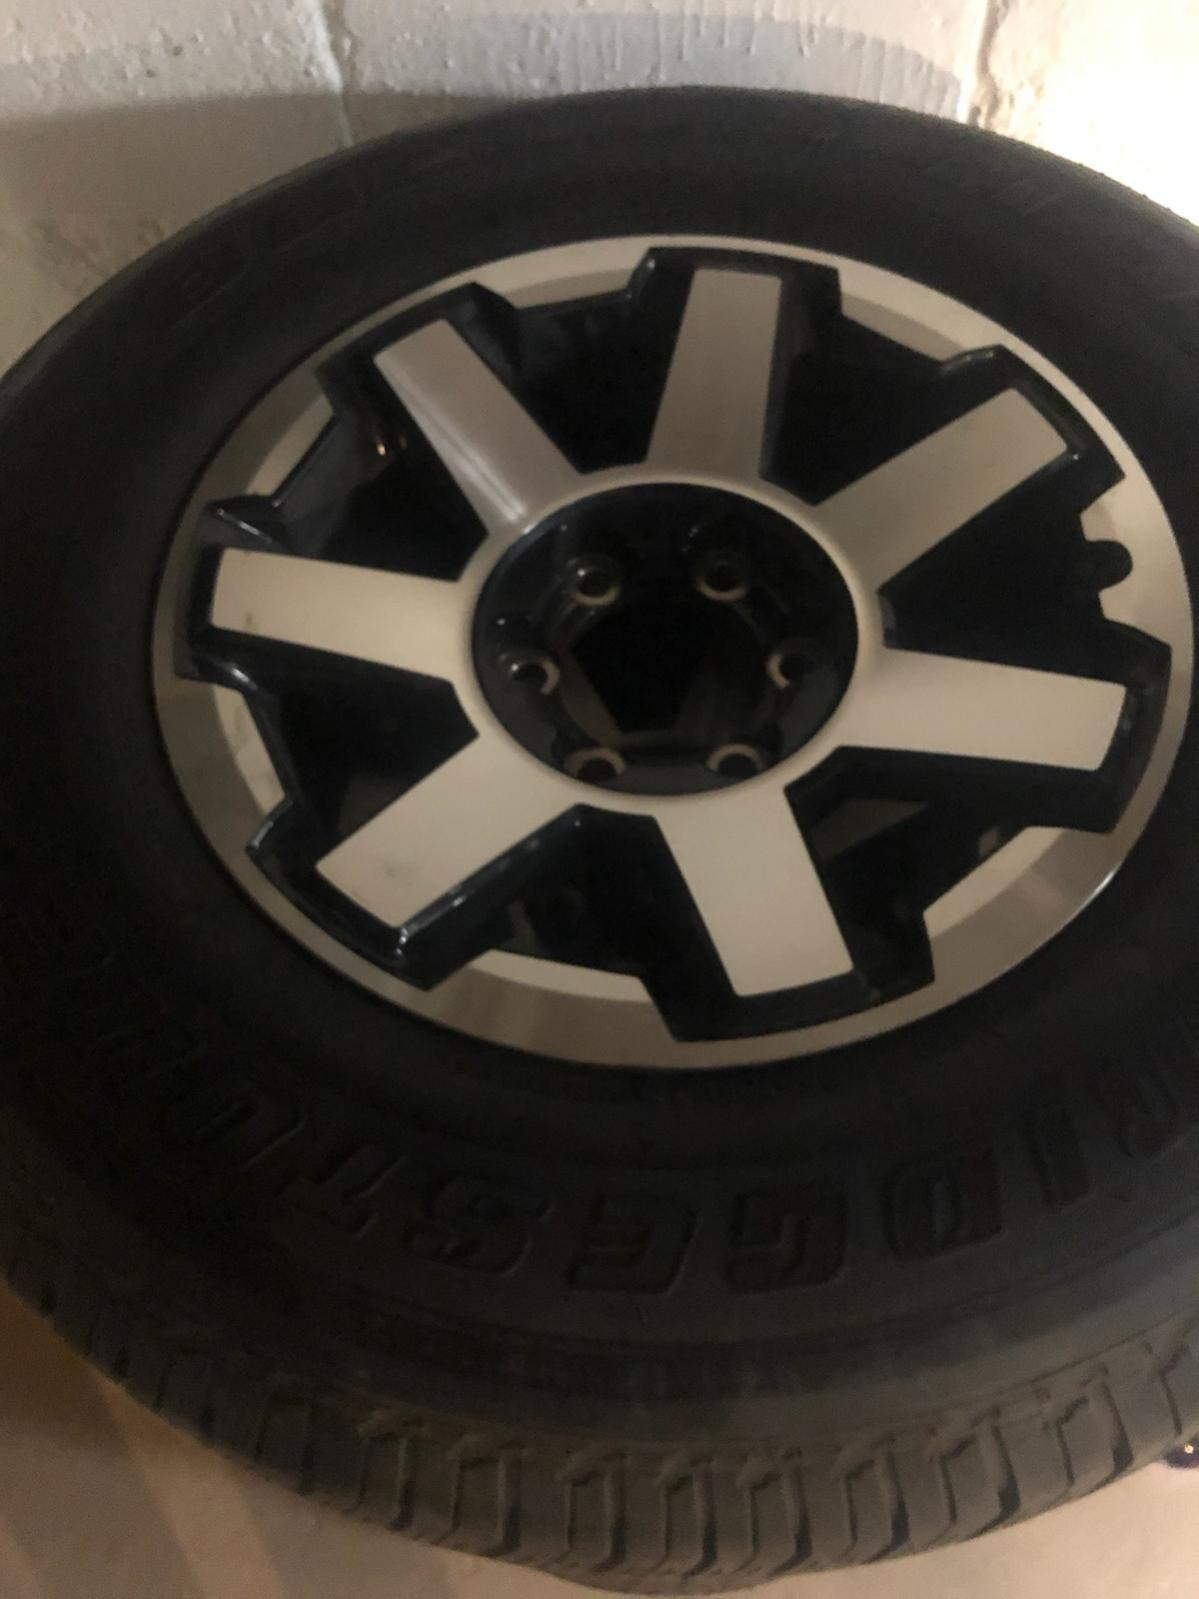 FS 2019 TRD ORP WHEELS AND TIRES 0 Medina, Ohio  SOLD-tires-2-jpg